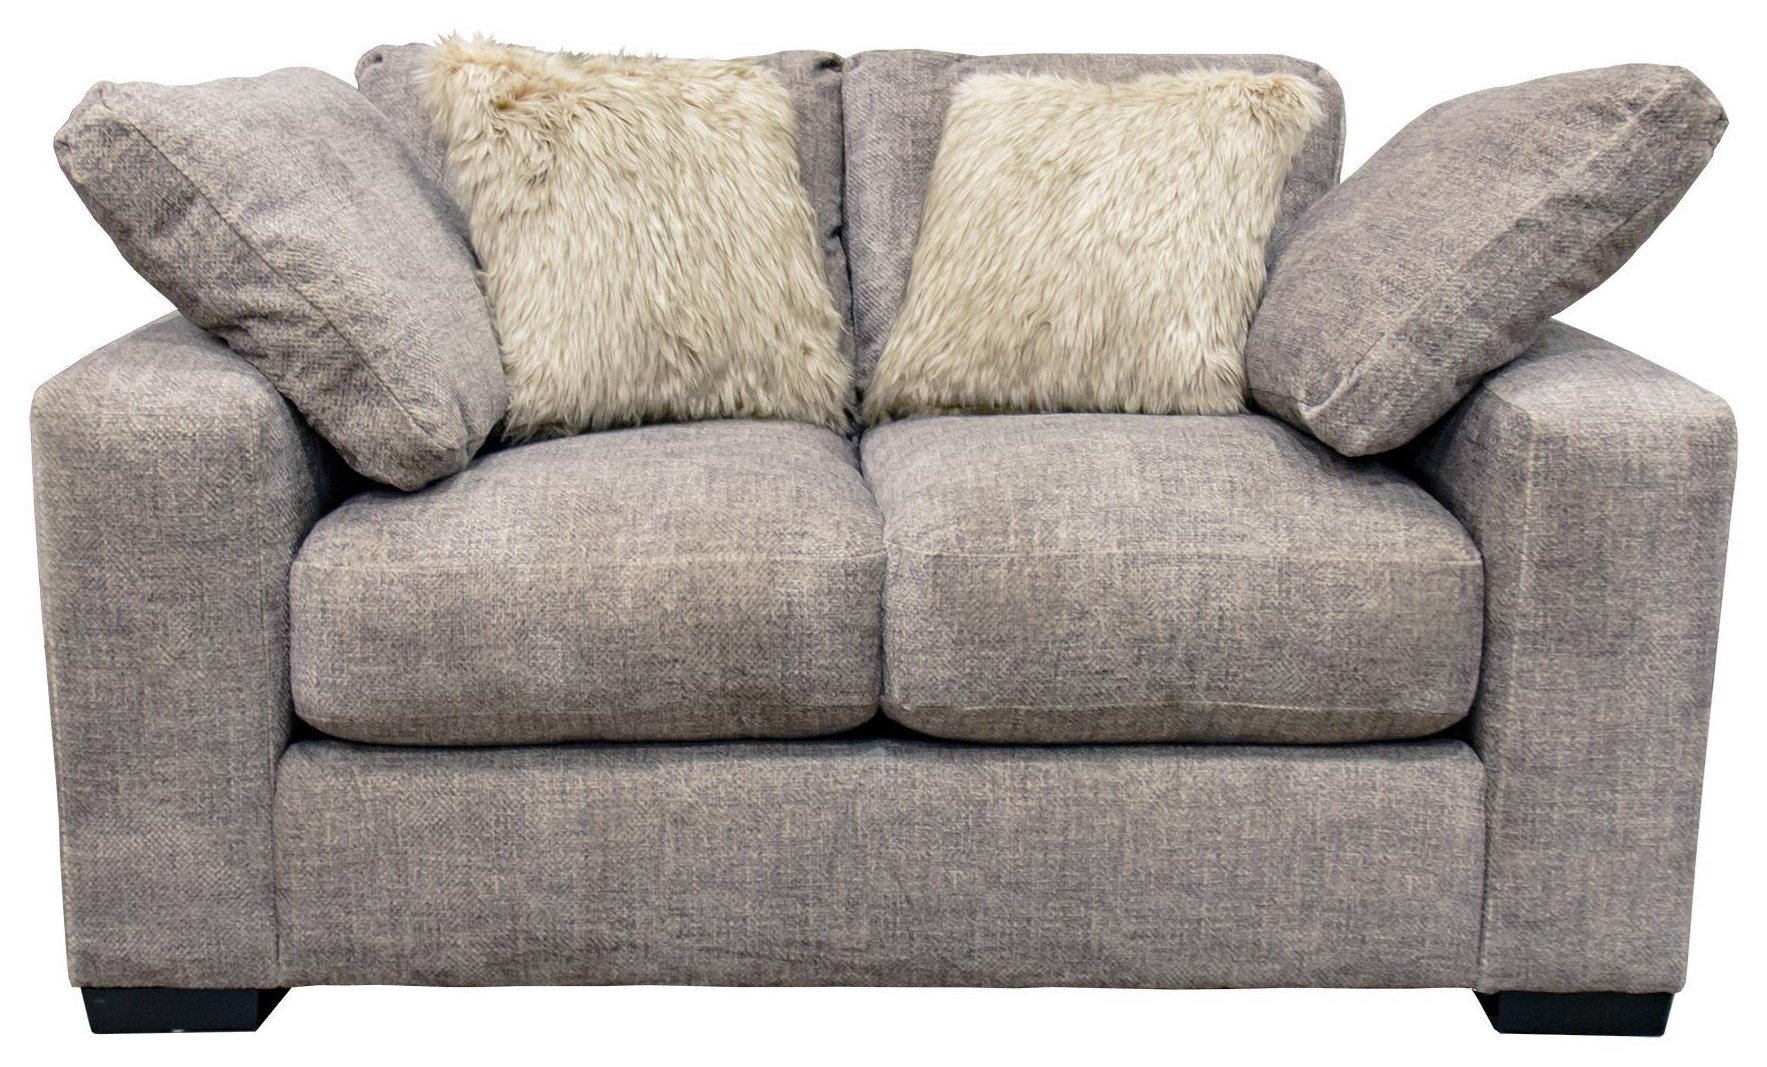 Albany 8668 Love Seat - Item Number: 8668-10-GENS-26292